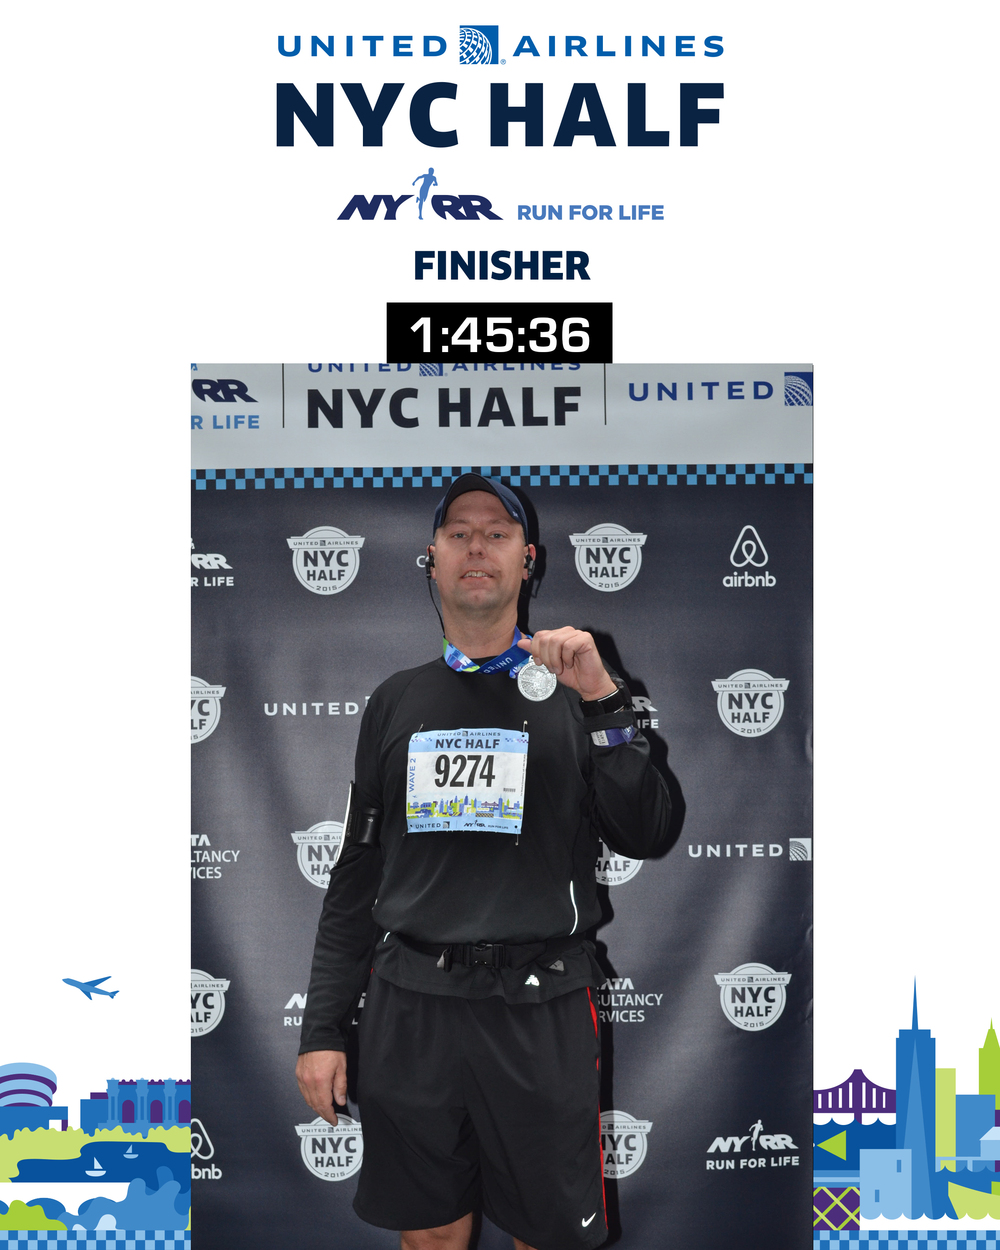 I am quite proud of my finishing time - it was a good race, and I almost hit my ambitious 1:45 goal.